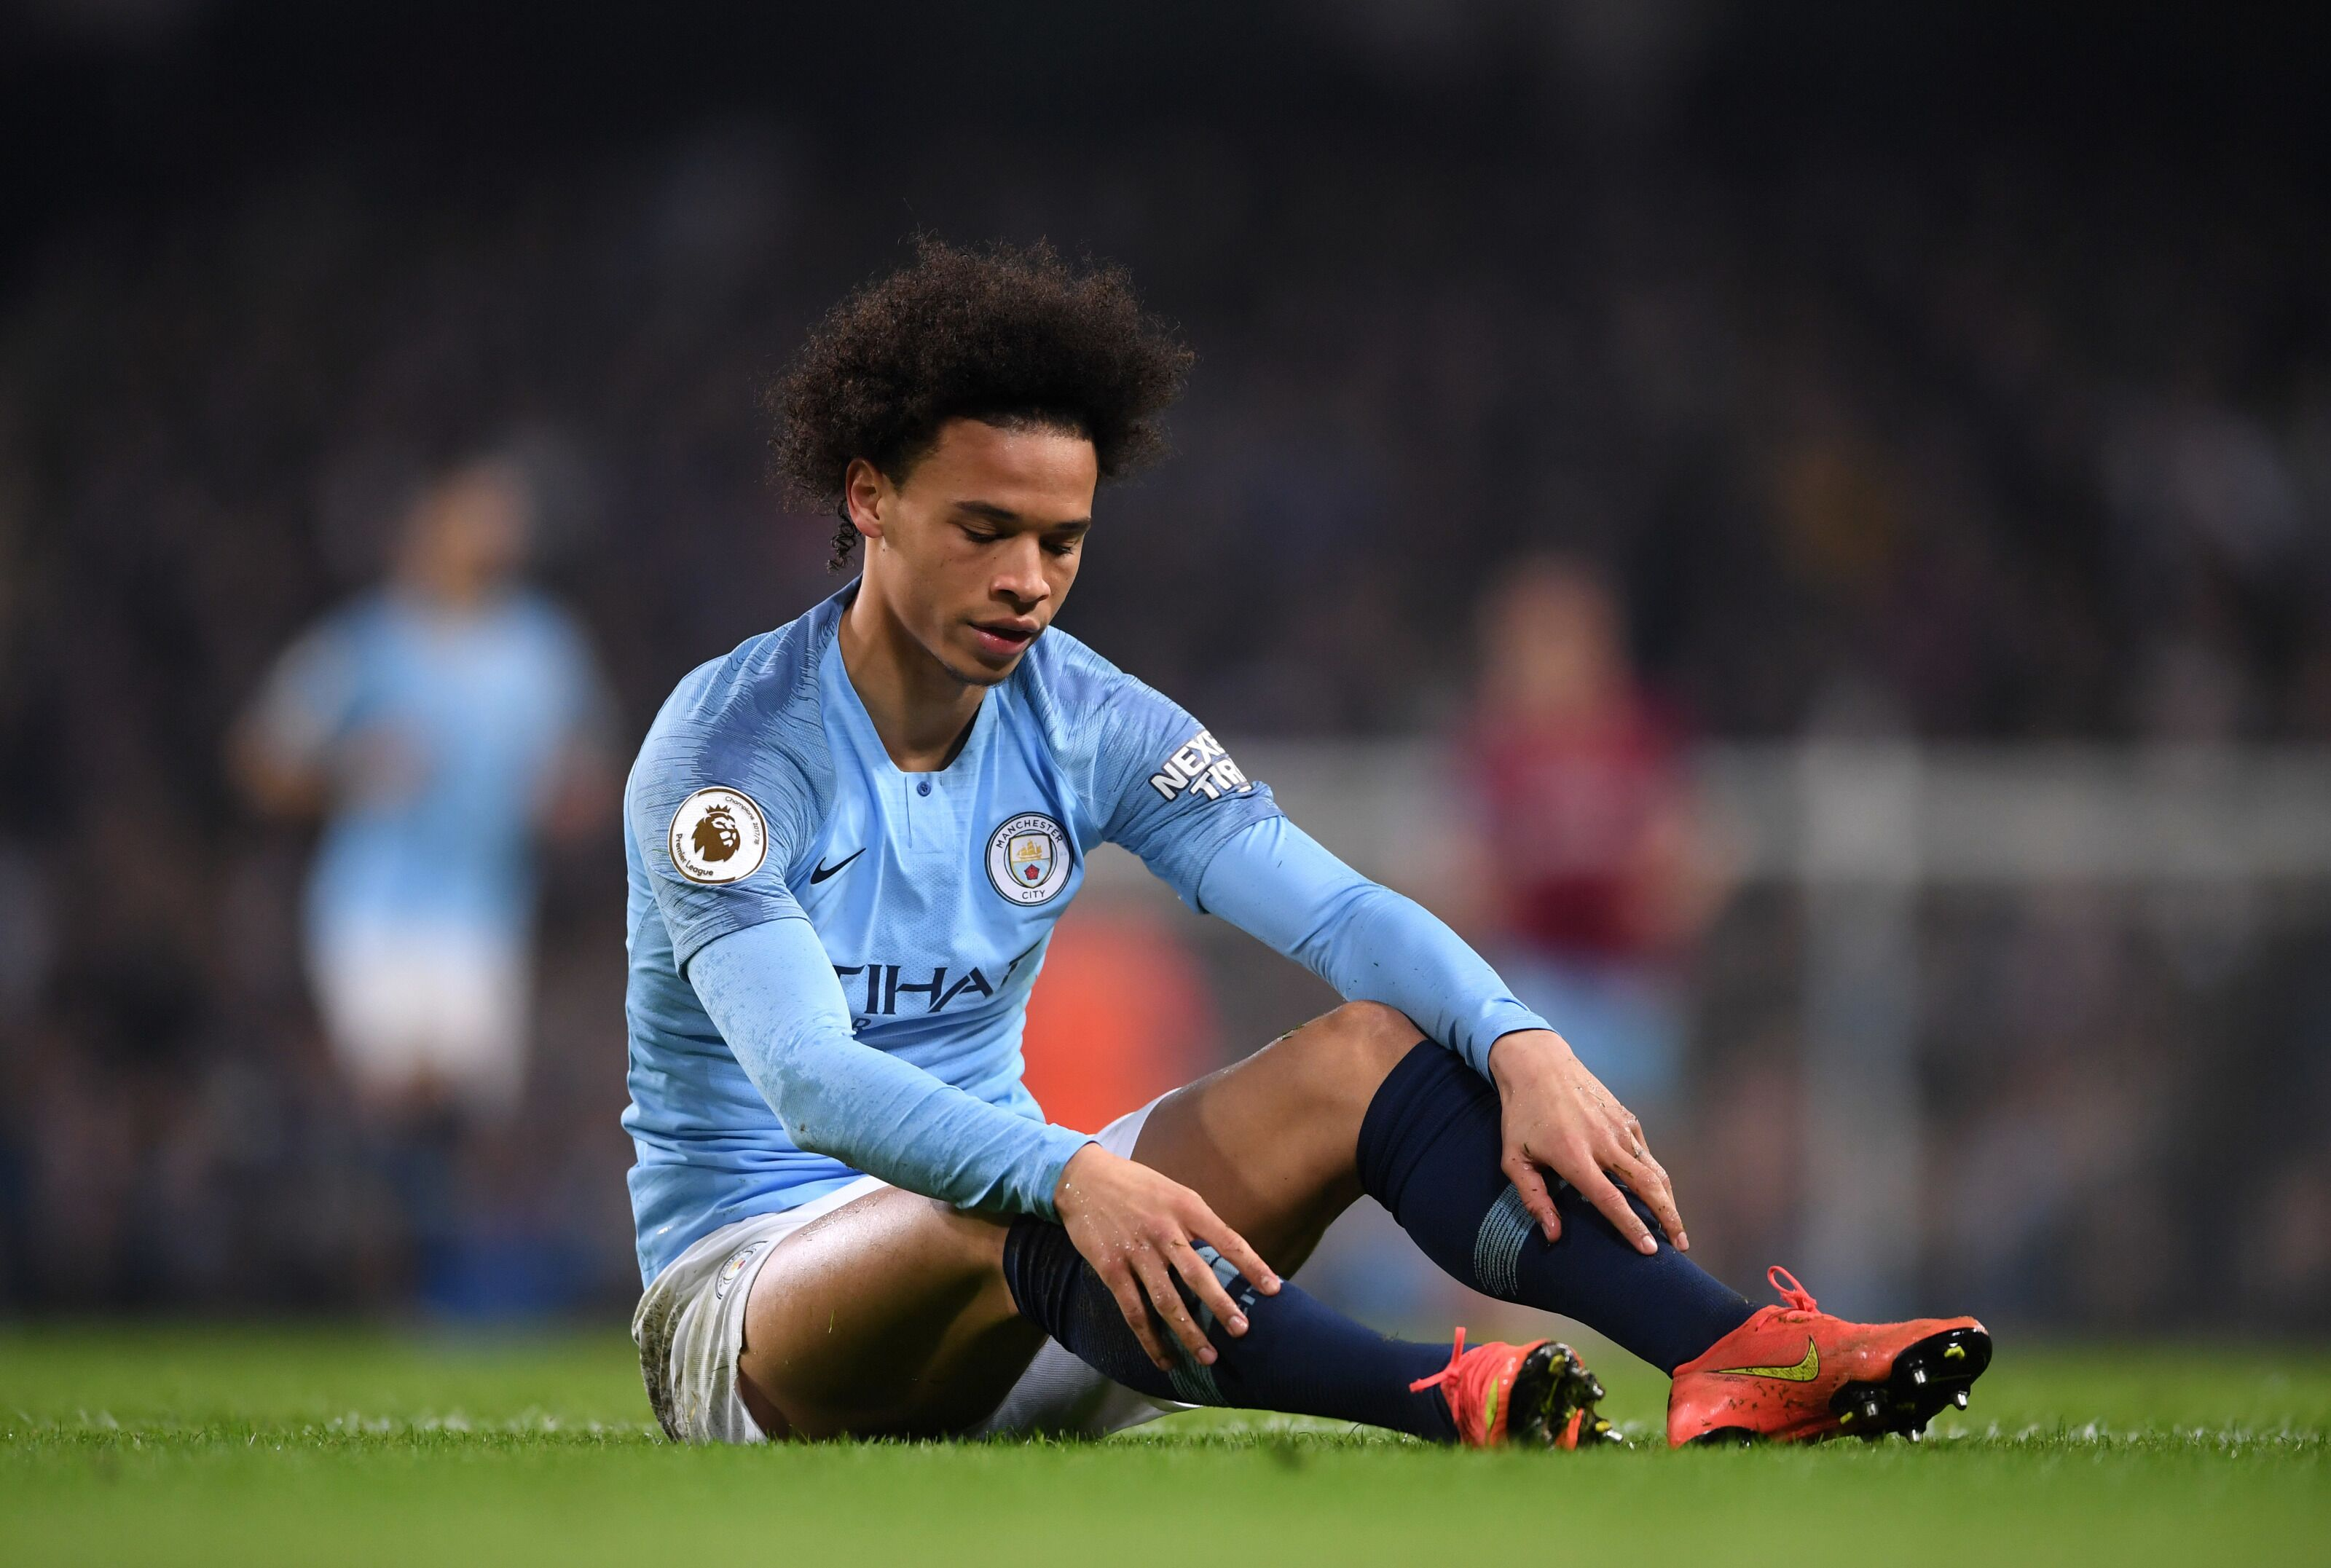 Manchester City's Leroy Sane To Leave For Bayern Munich?